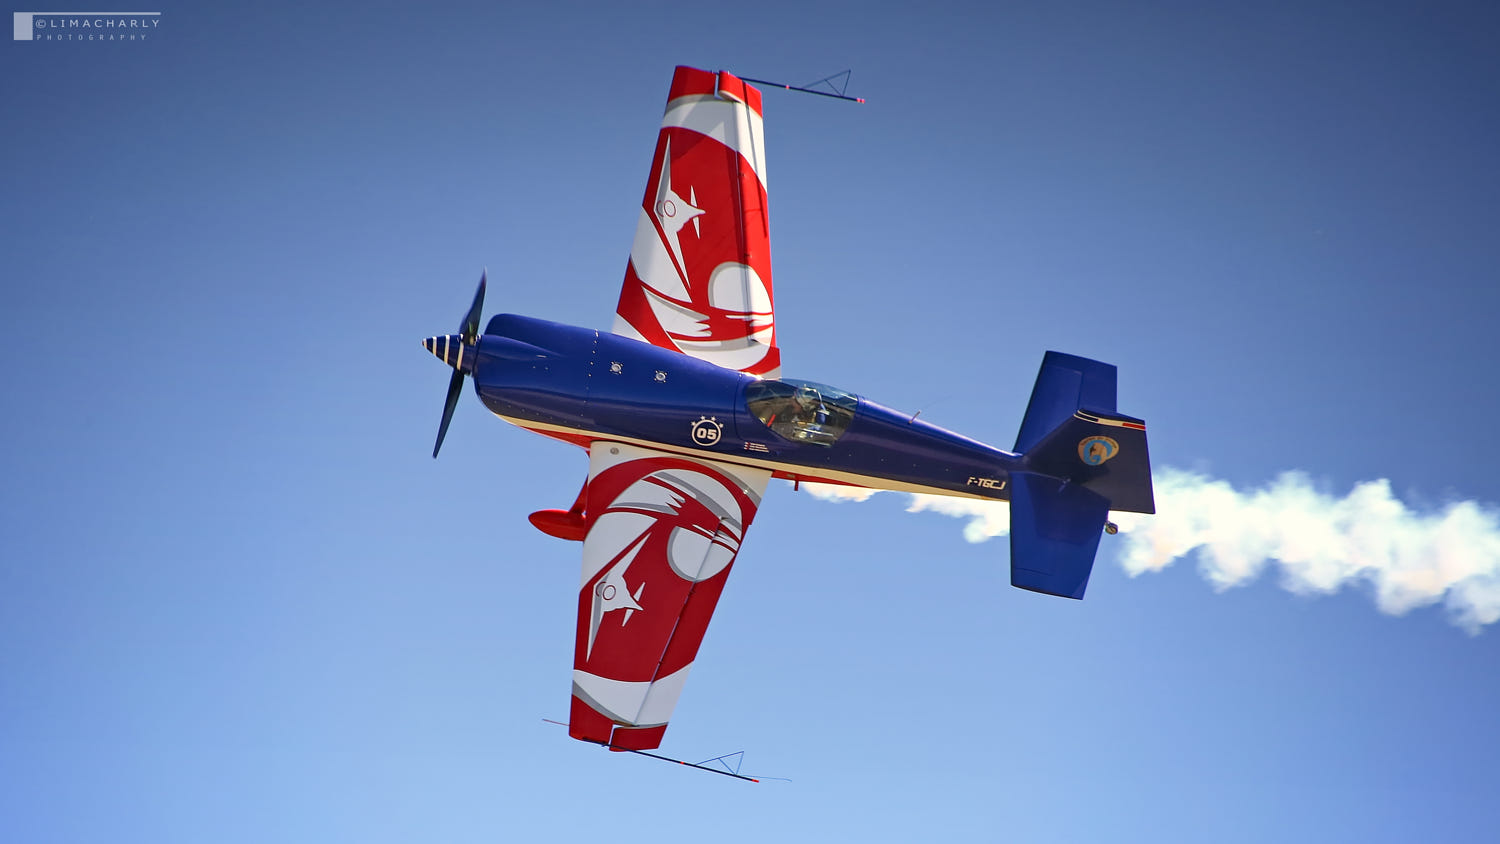 French aerobatic Extra 300 during airshow by Laurent Couture